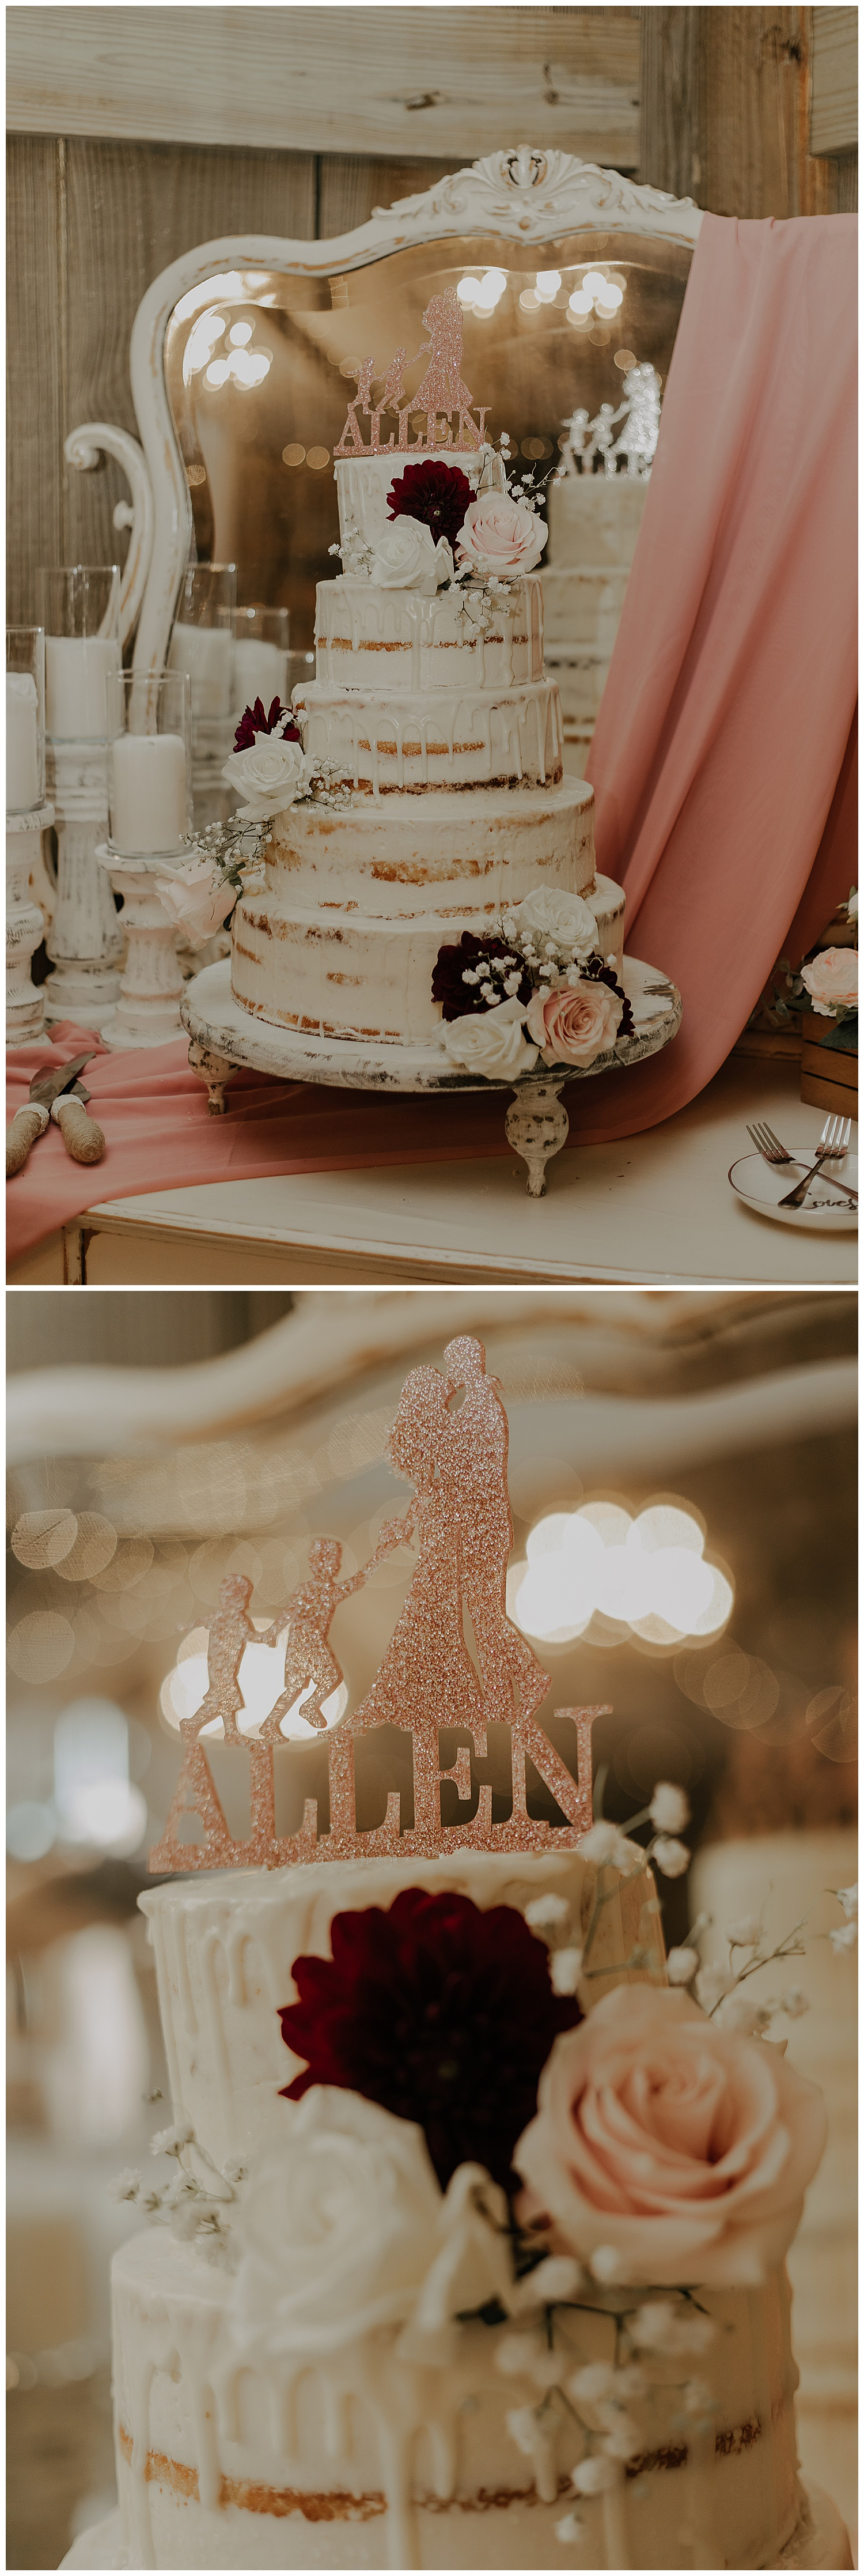 Isn't this the cutest cake topper!! Tater's Cakes did a wonderful job designing this cake. Some thought the hot day melted it perfectly, but we all know it would have looked like a hot mess if that were the case. The cake artist added this touch.